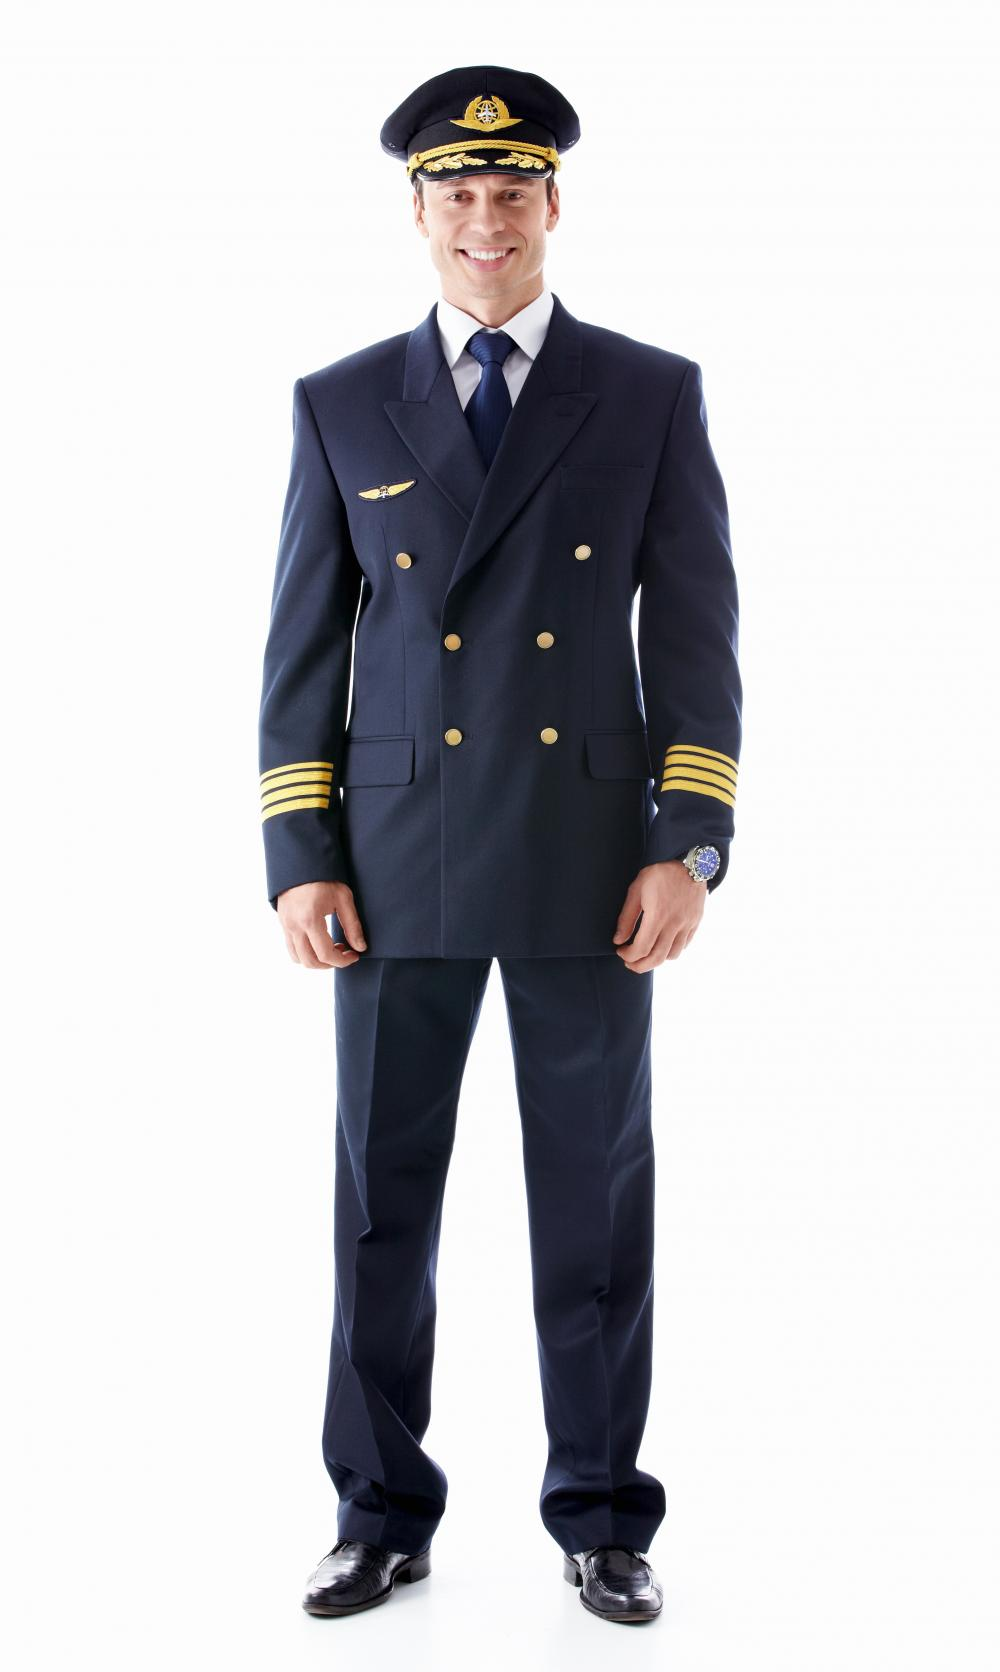 Steps to Become an Airline Pilot